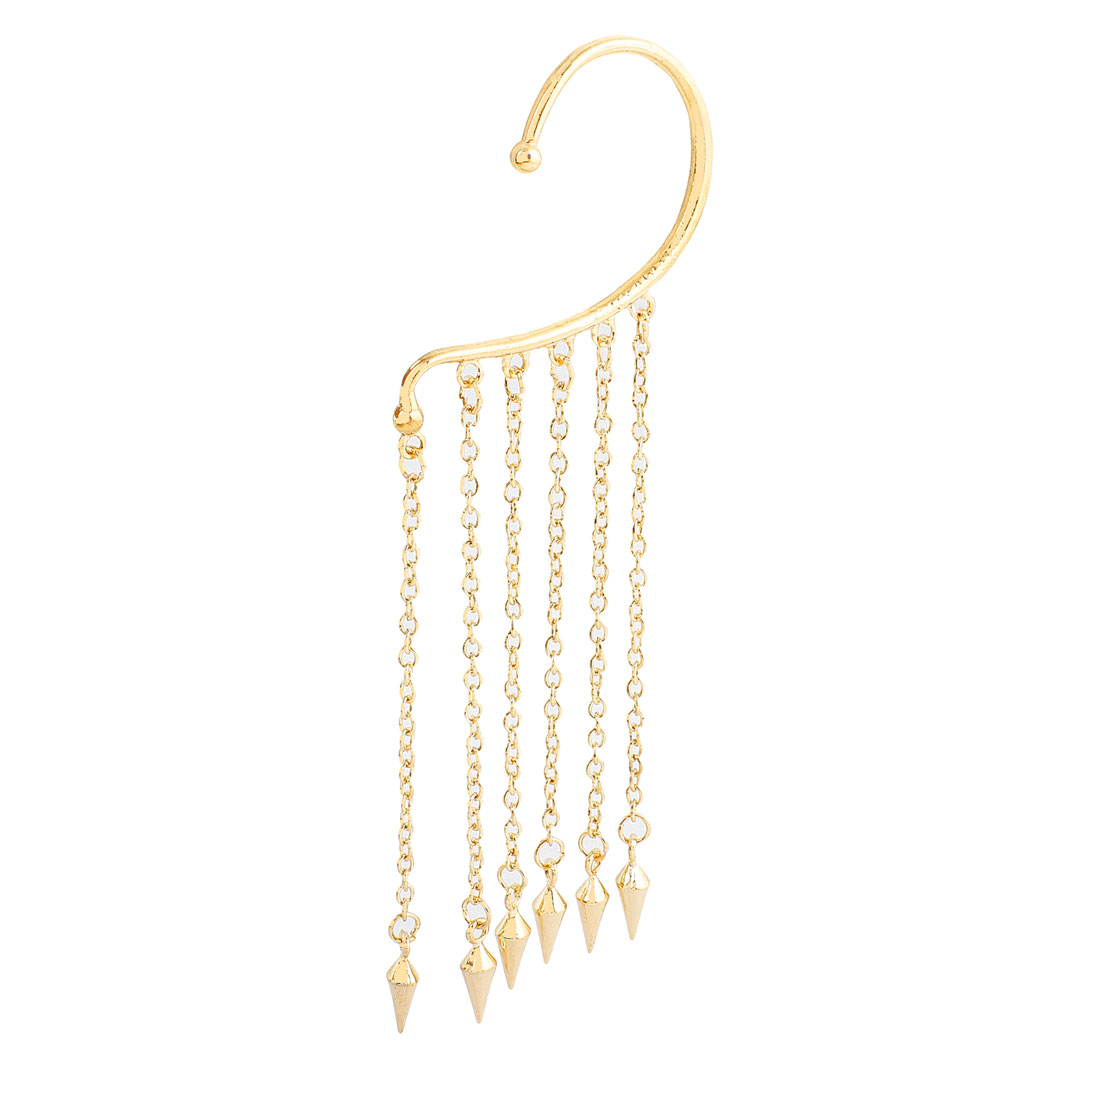 Gold Tone Punk Skull Purl Ear Cuff Chain Tassels Dangle Clip Earring